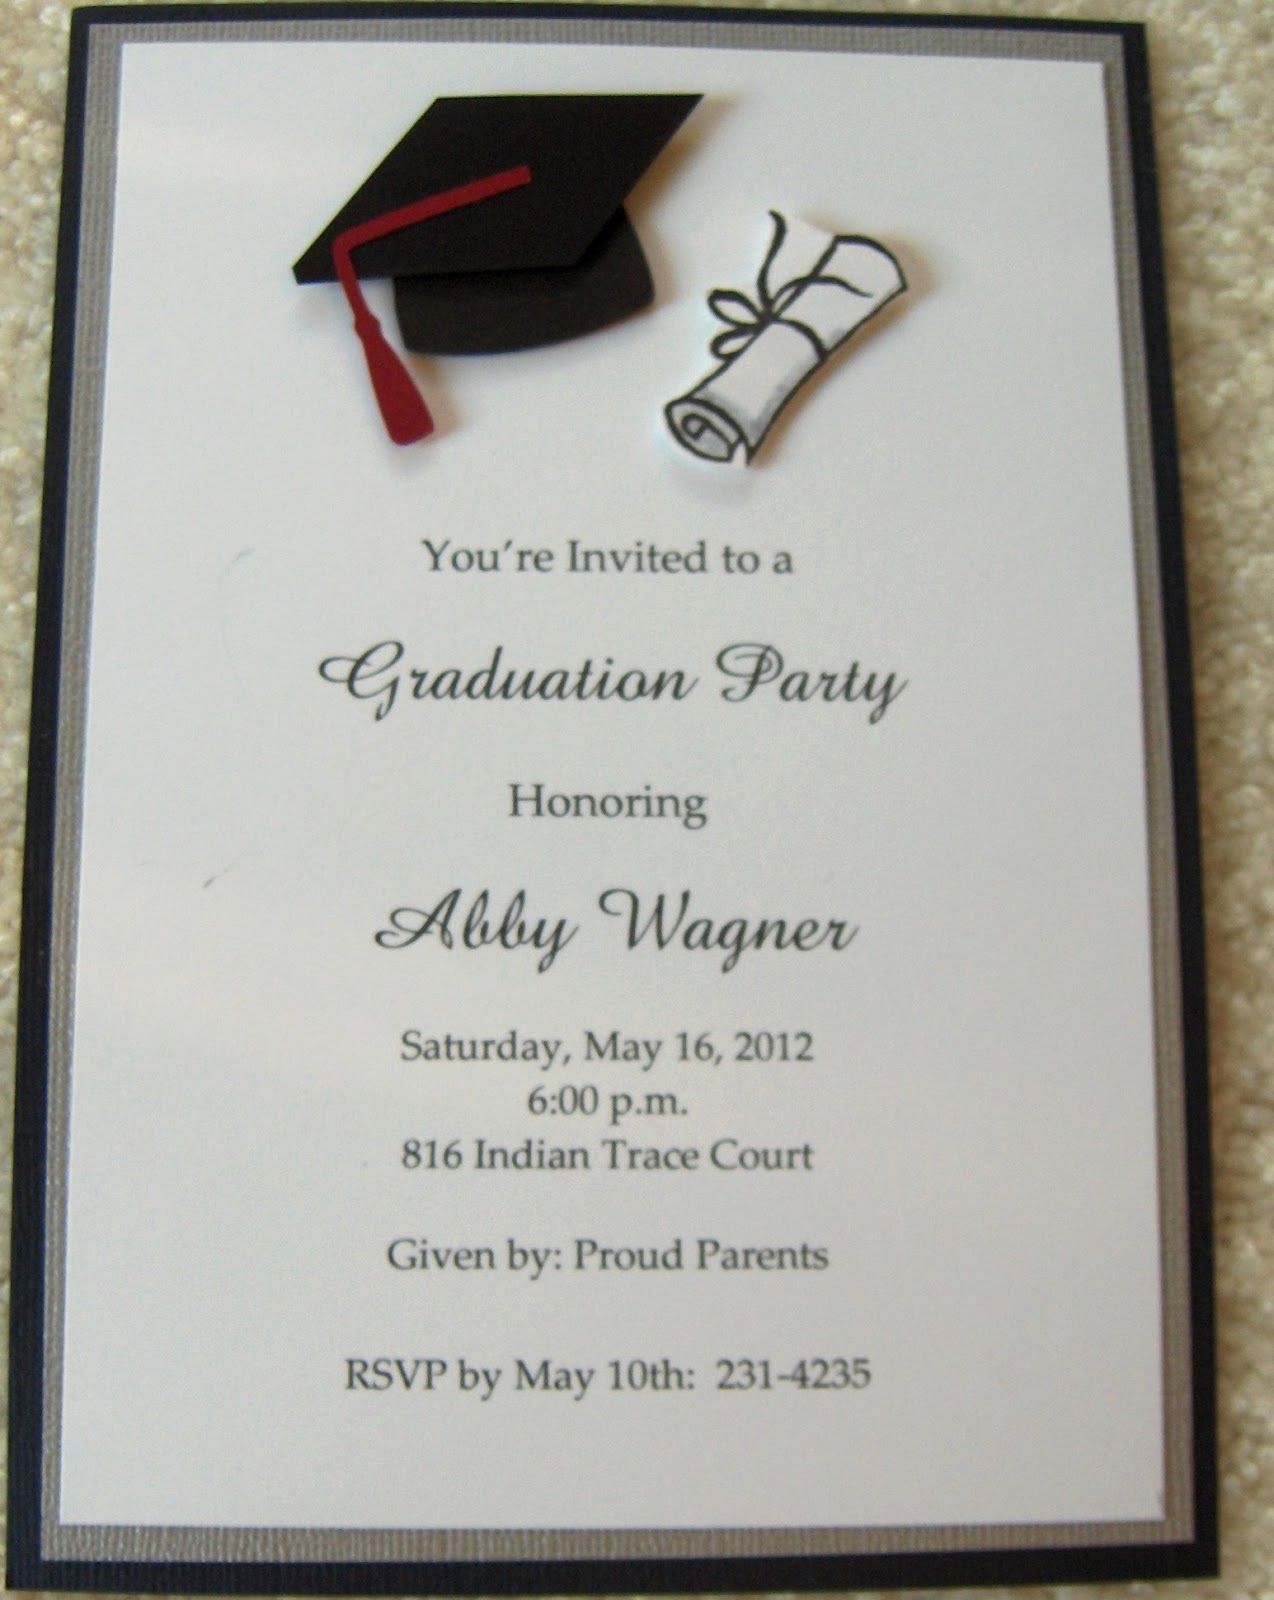 Graduation Invitation Announcement Wording New Graduation Invitations Google Search